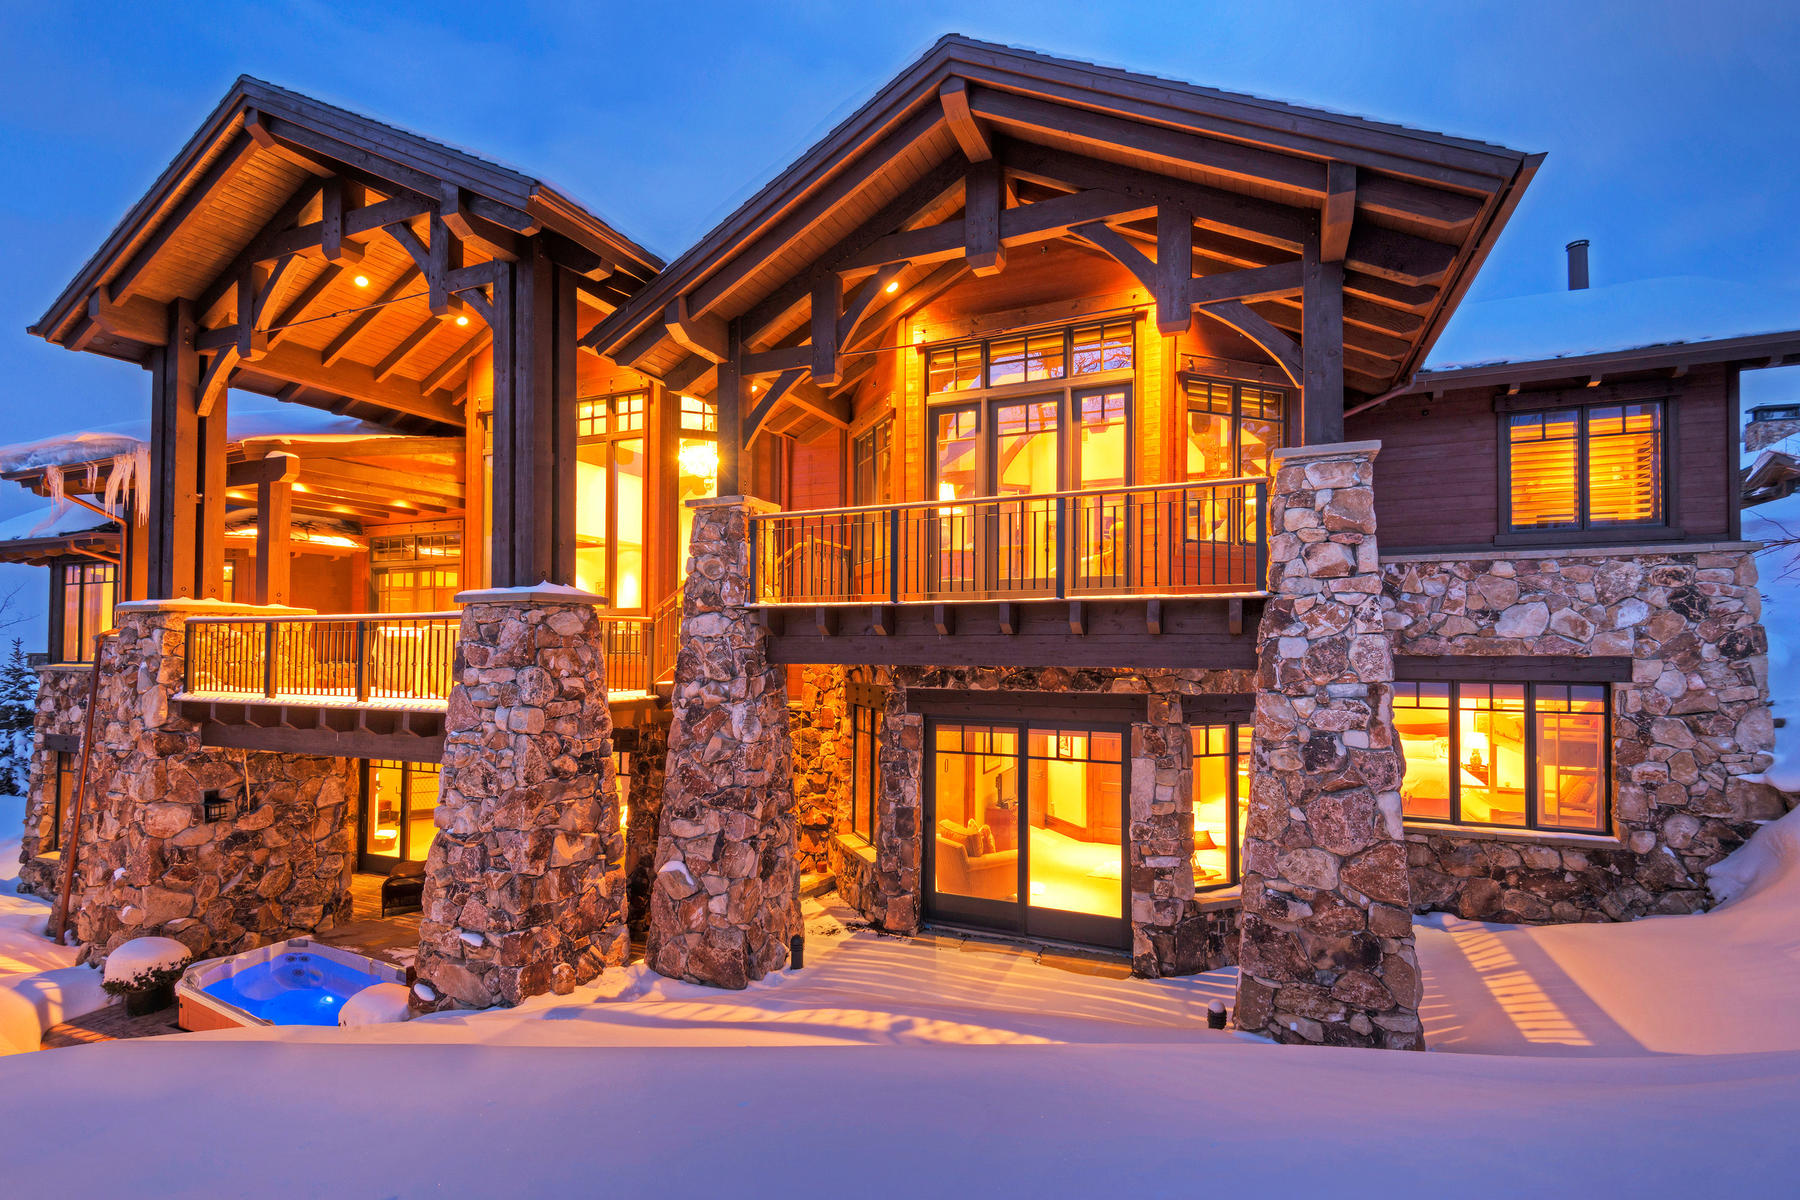 Single Family Homes for Sale at Stunning Mountain Ski Estate in the Coveted Northside Village 2 Hawkeye Pl, Park City, Utah 84060 United States